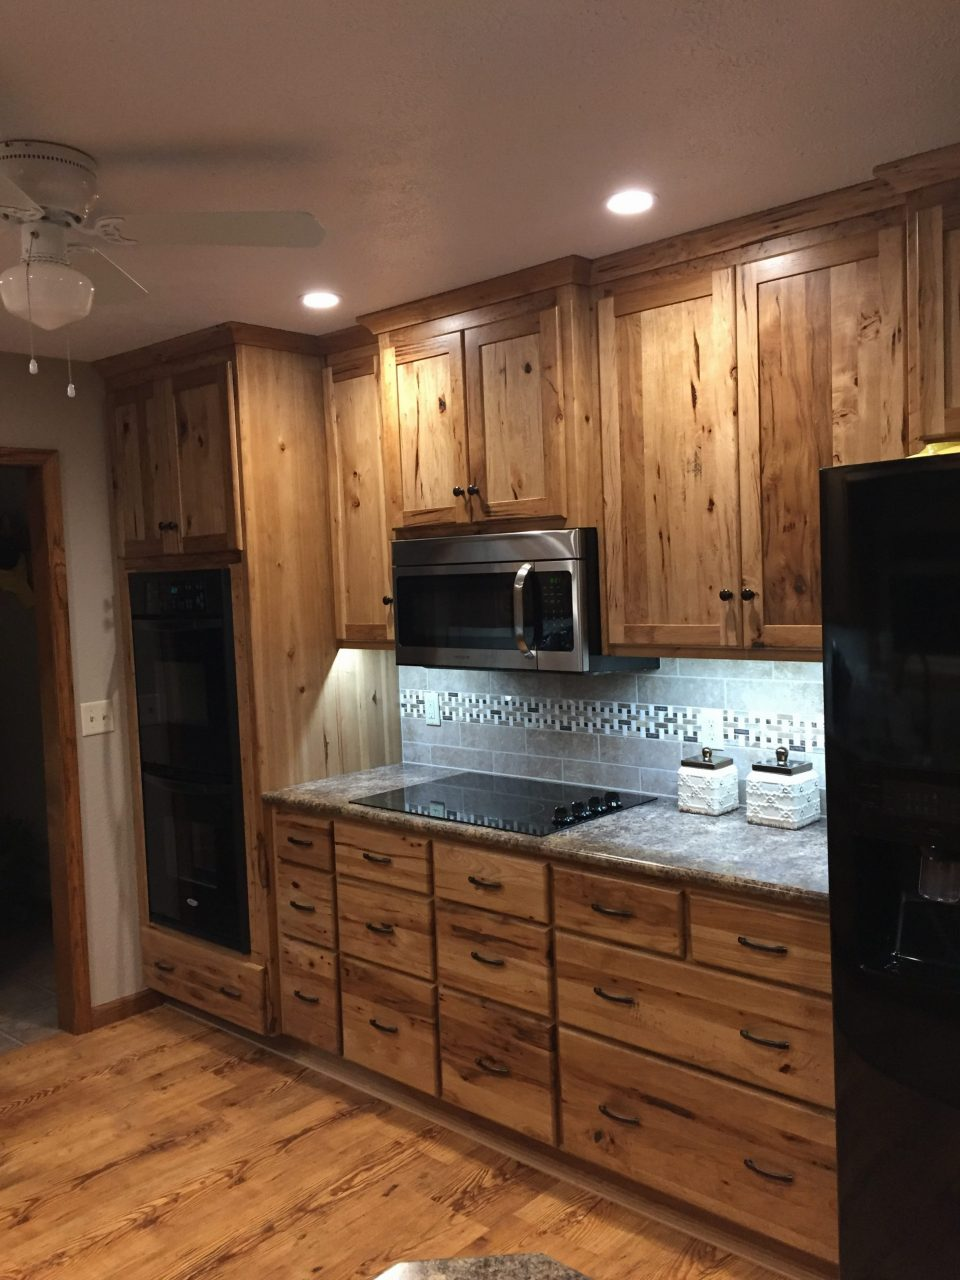 Rustic Hickory Kitchen Cabinets Wheatstate Wood Design